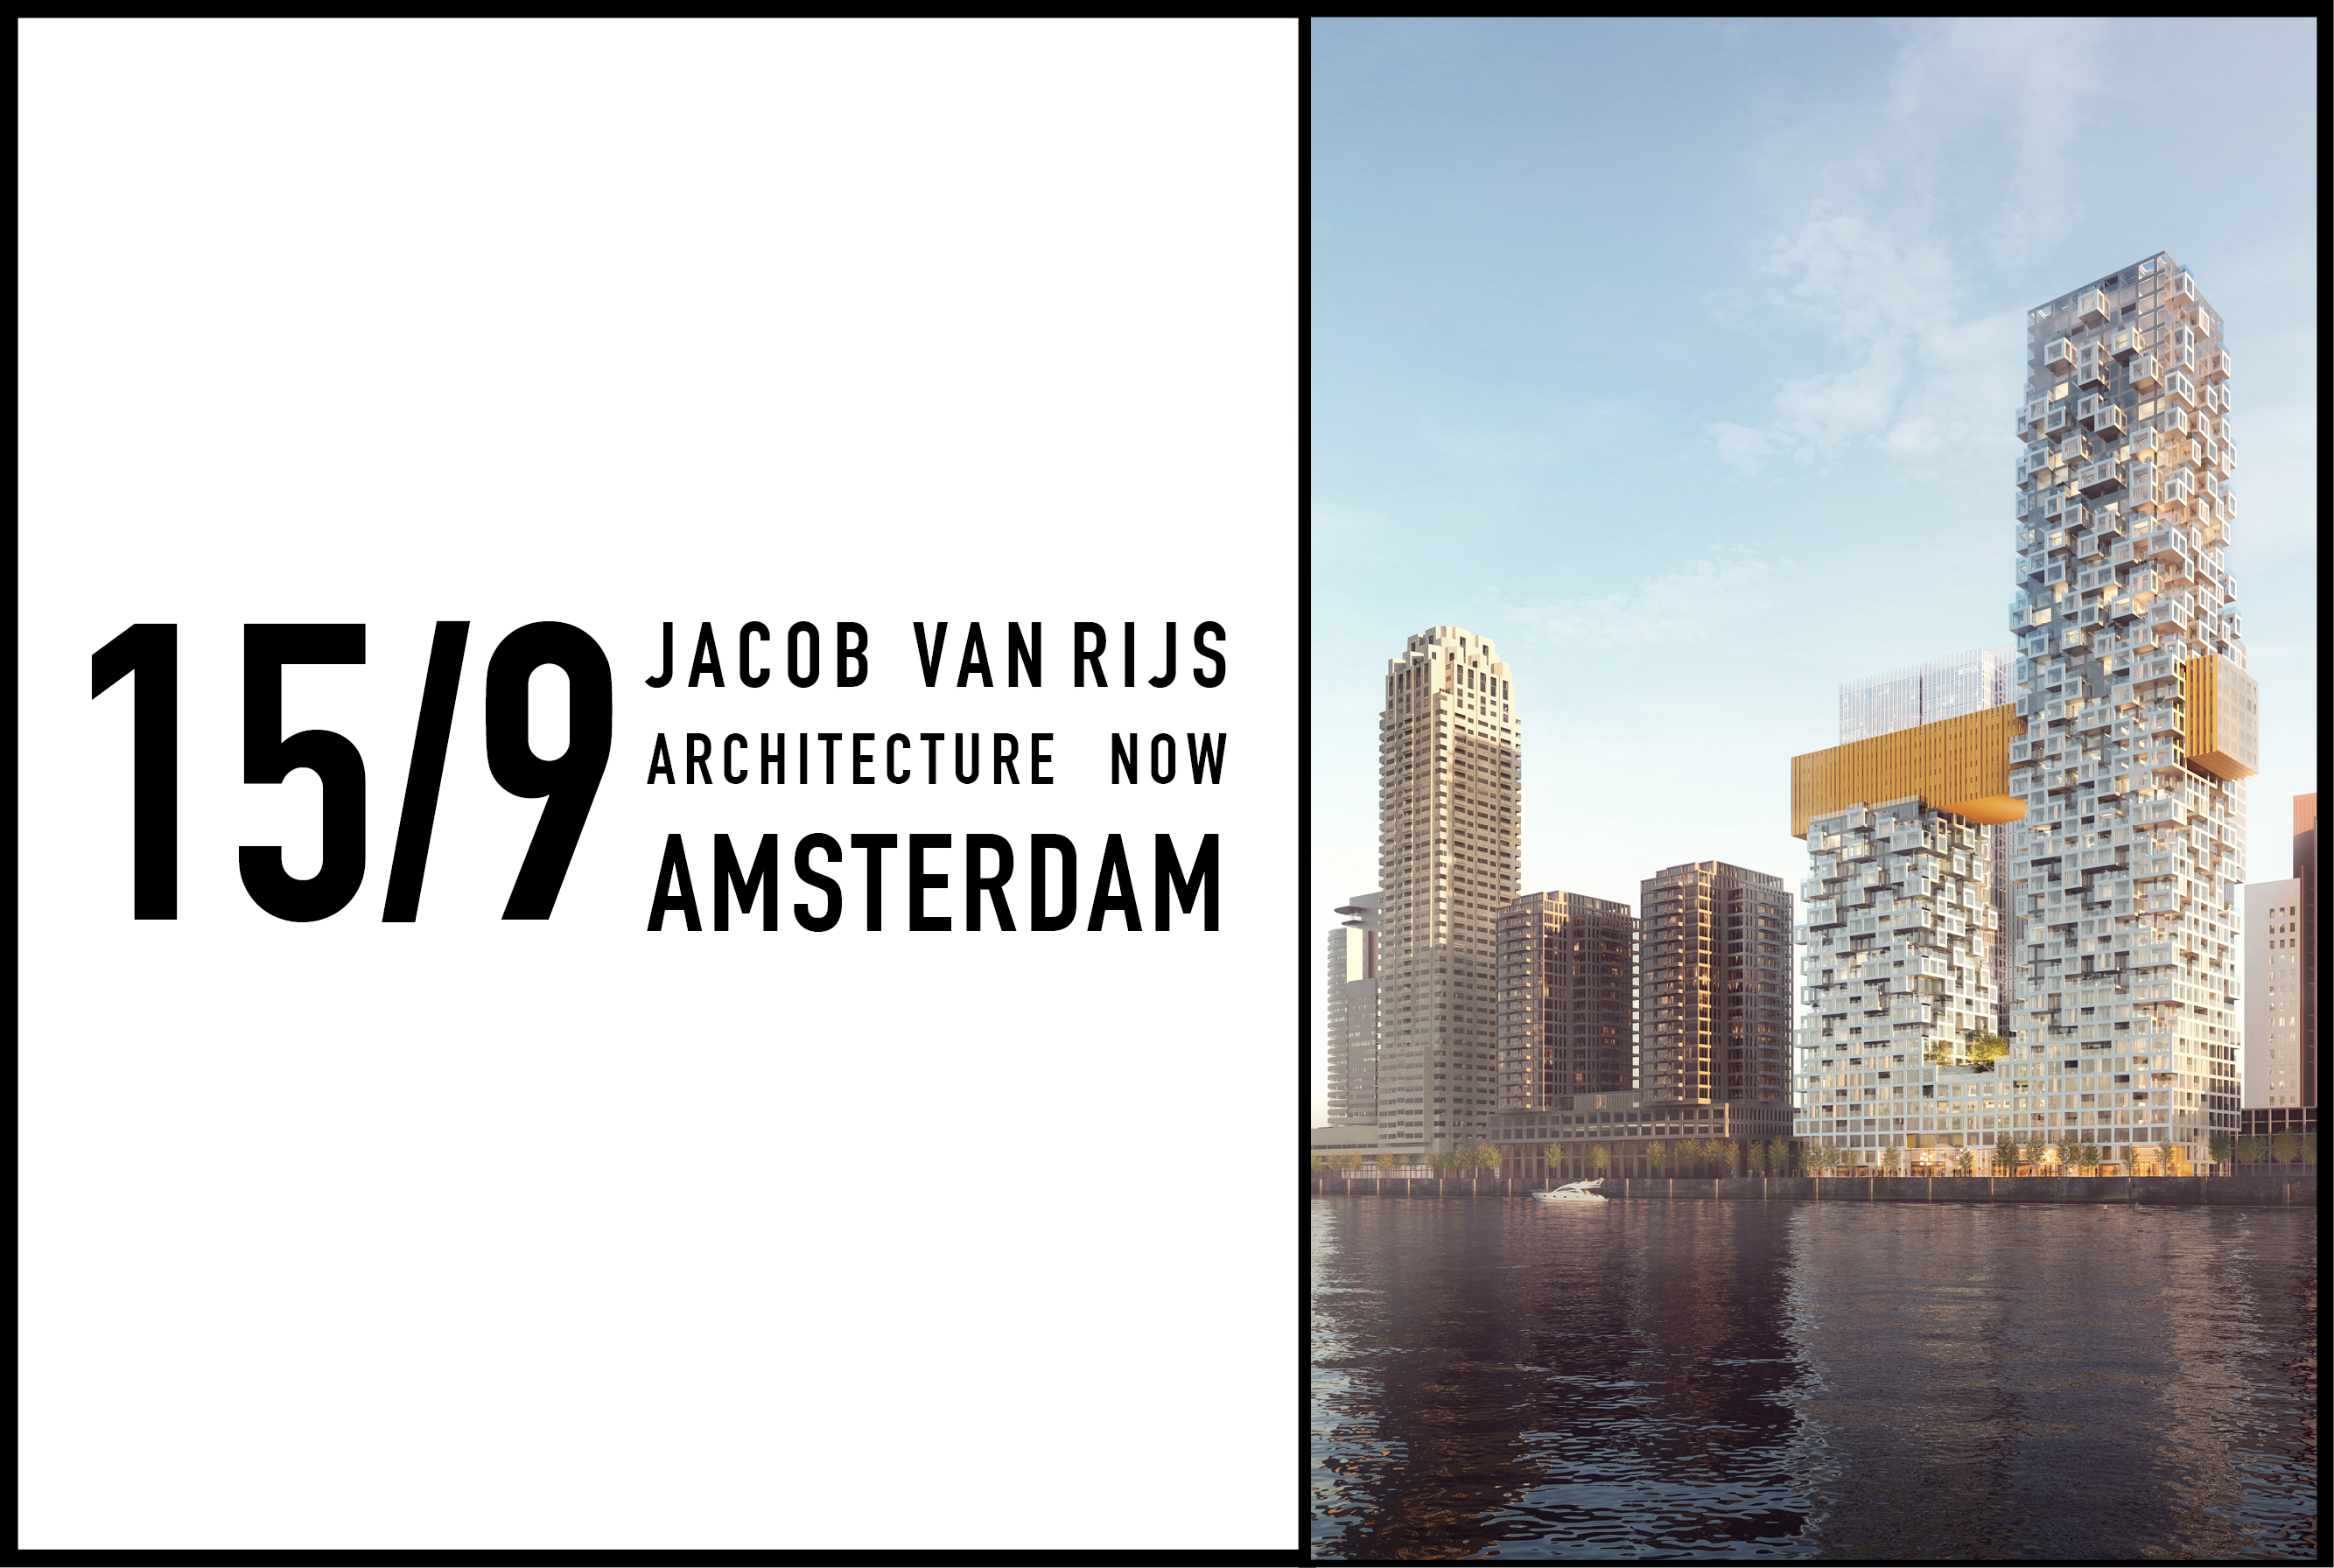 Jacob van Rijs to speak about Architecture in Rotterdam at Pakhuis de Zwijger, 15 September 2017